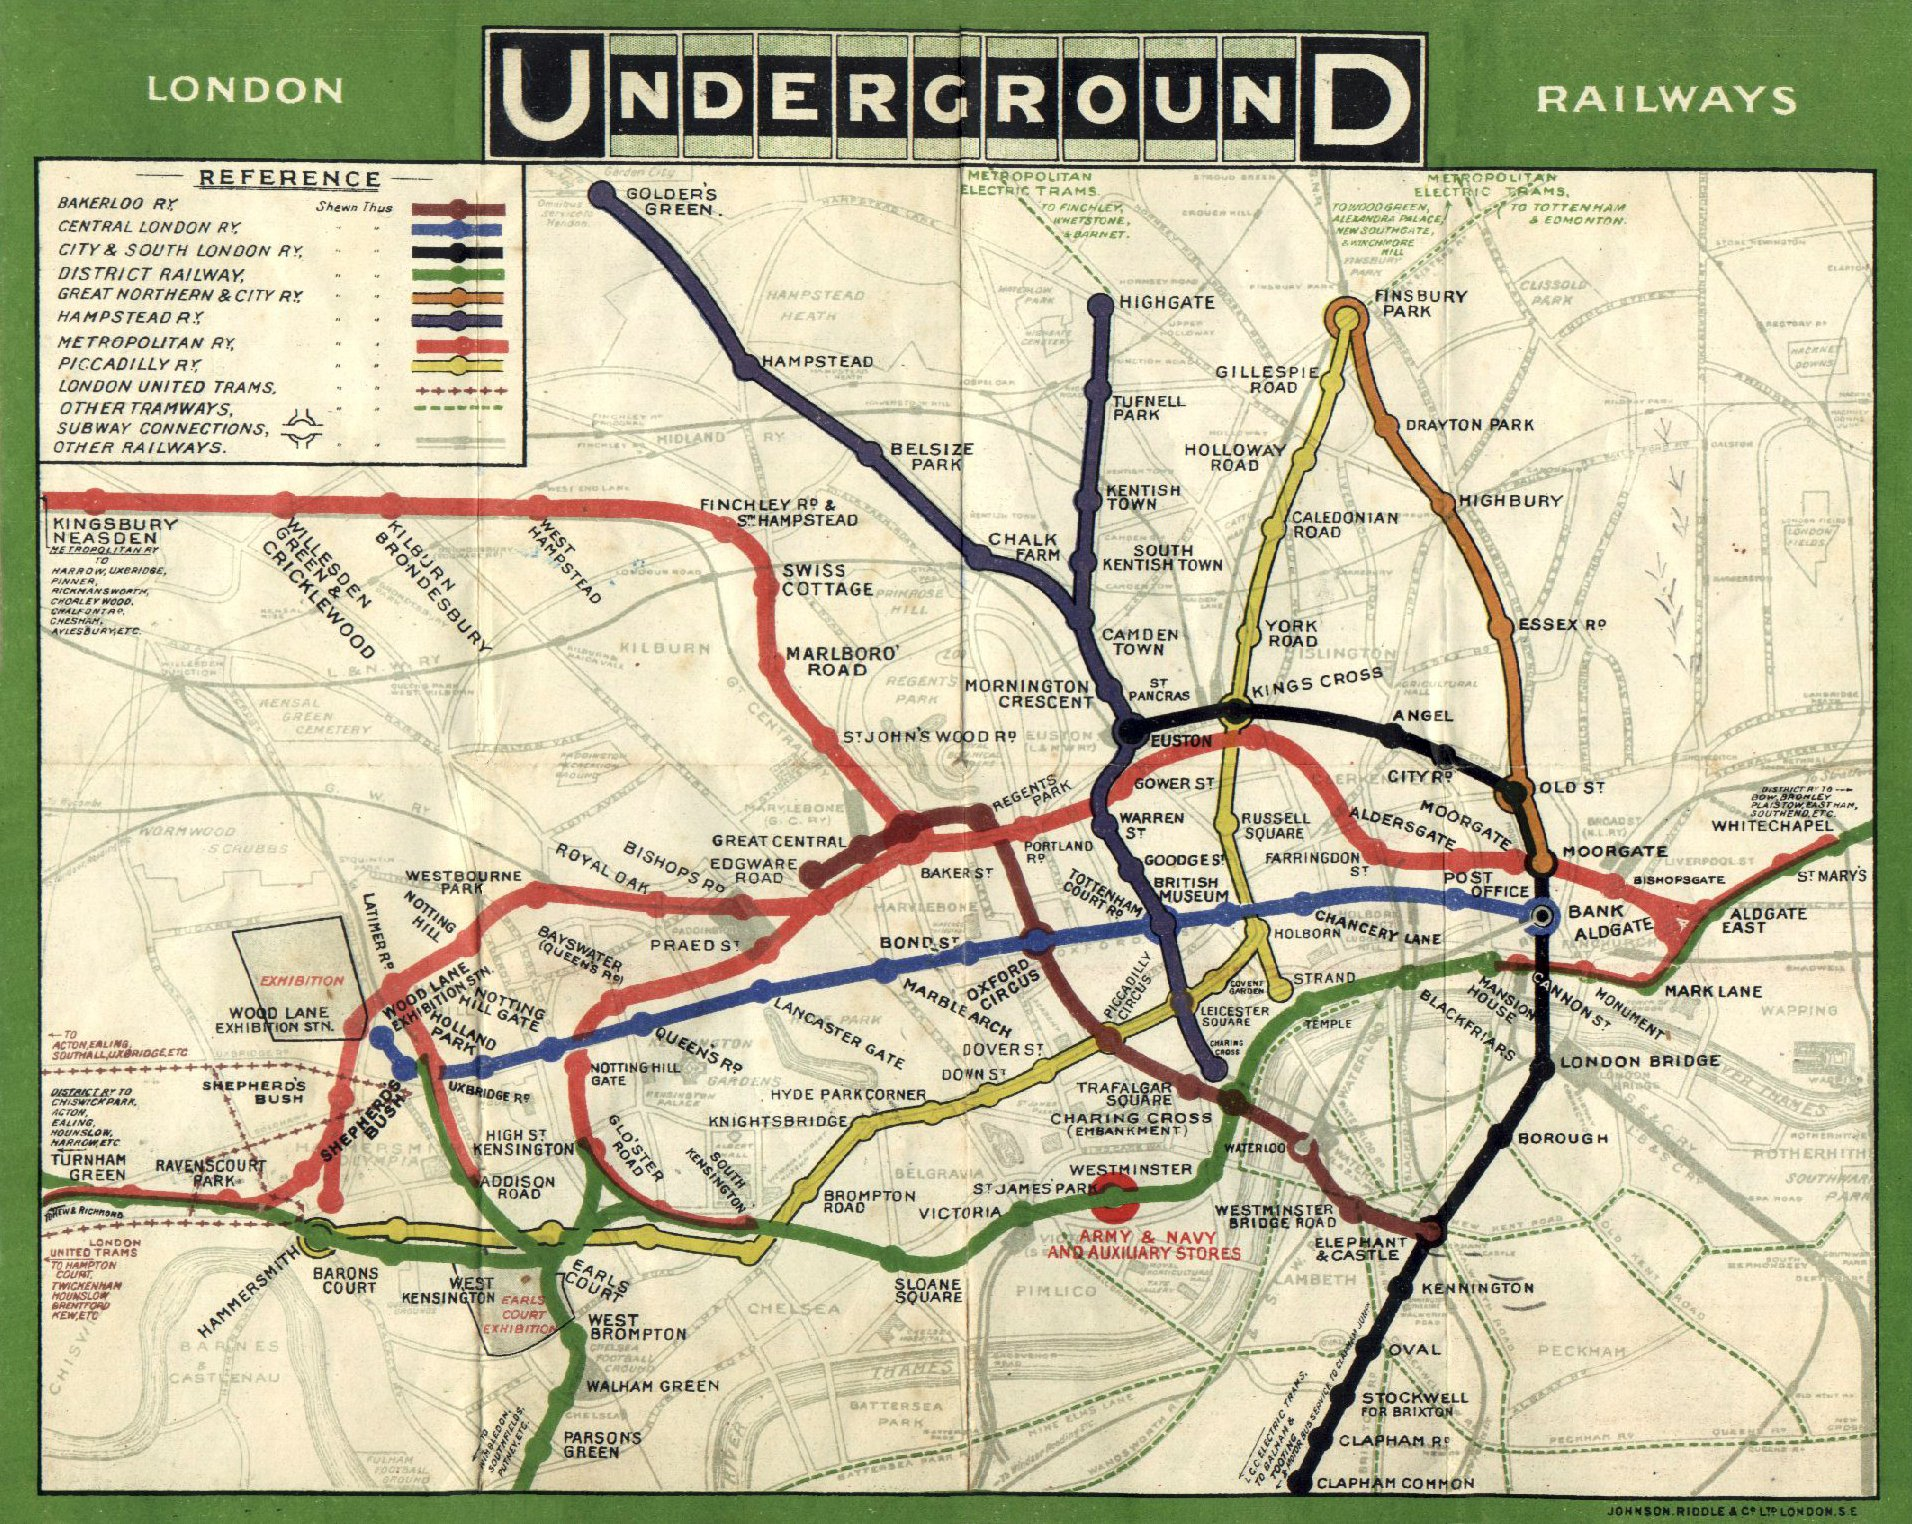 London Underground in 1908